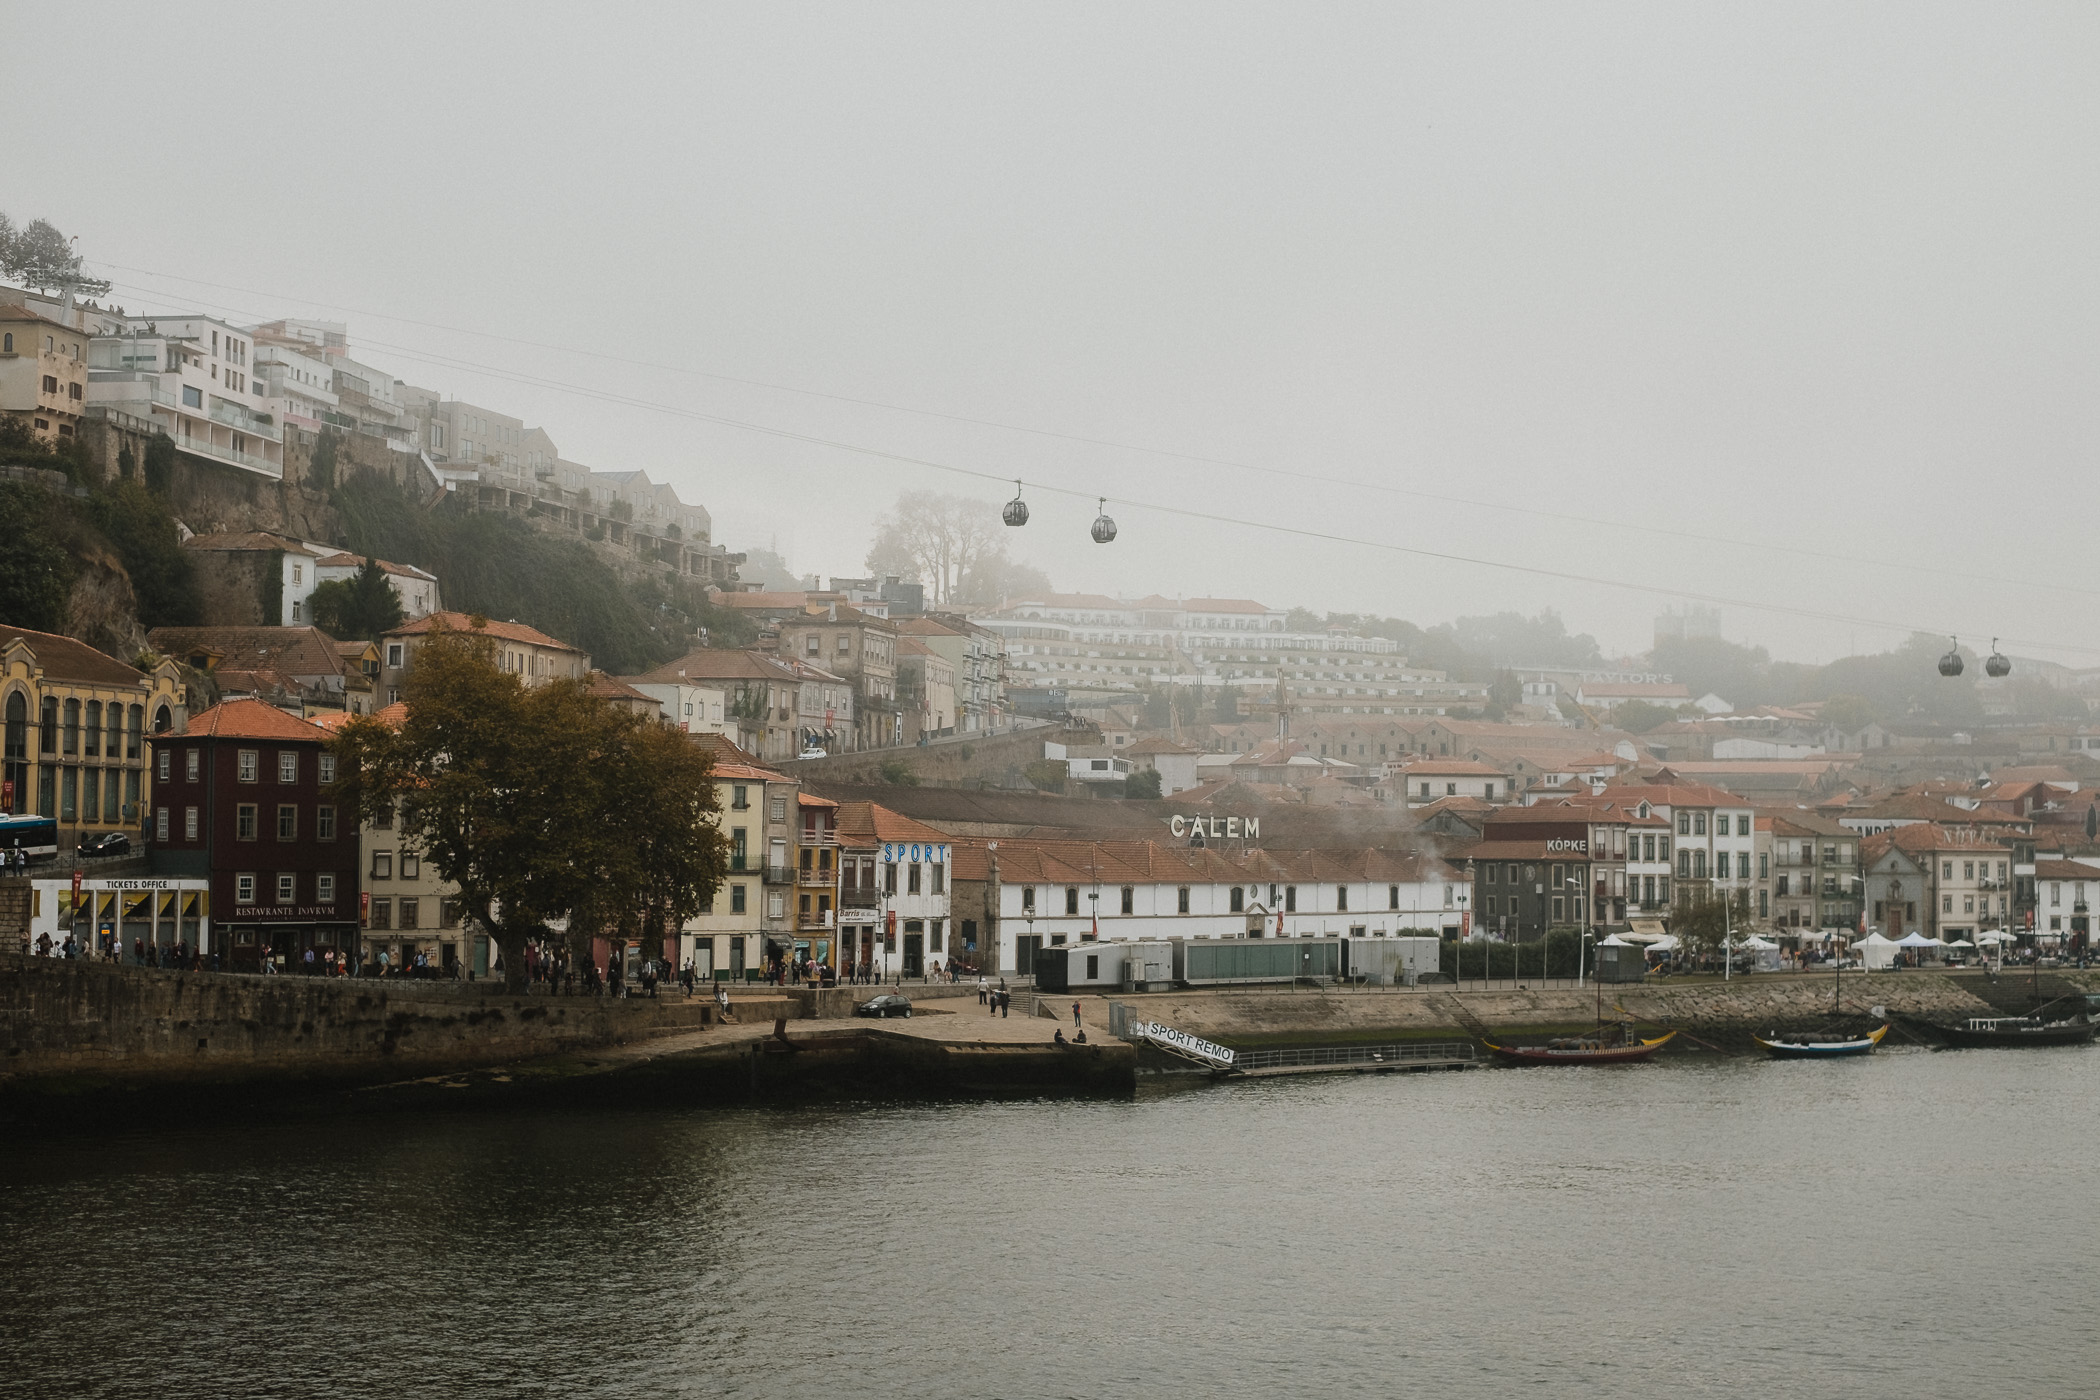 Looking across the Douro, where Porto's infamous wine cellars are located.